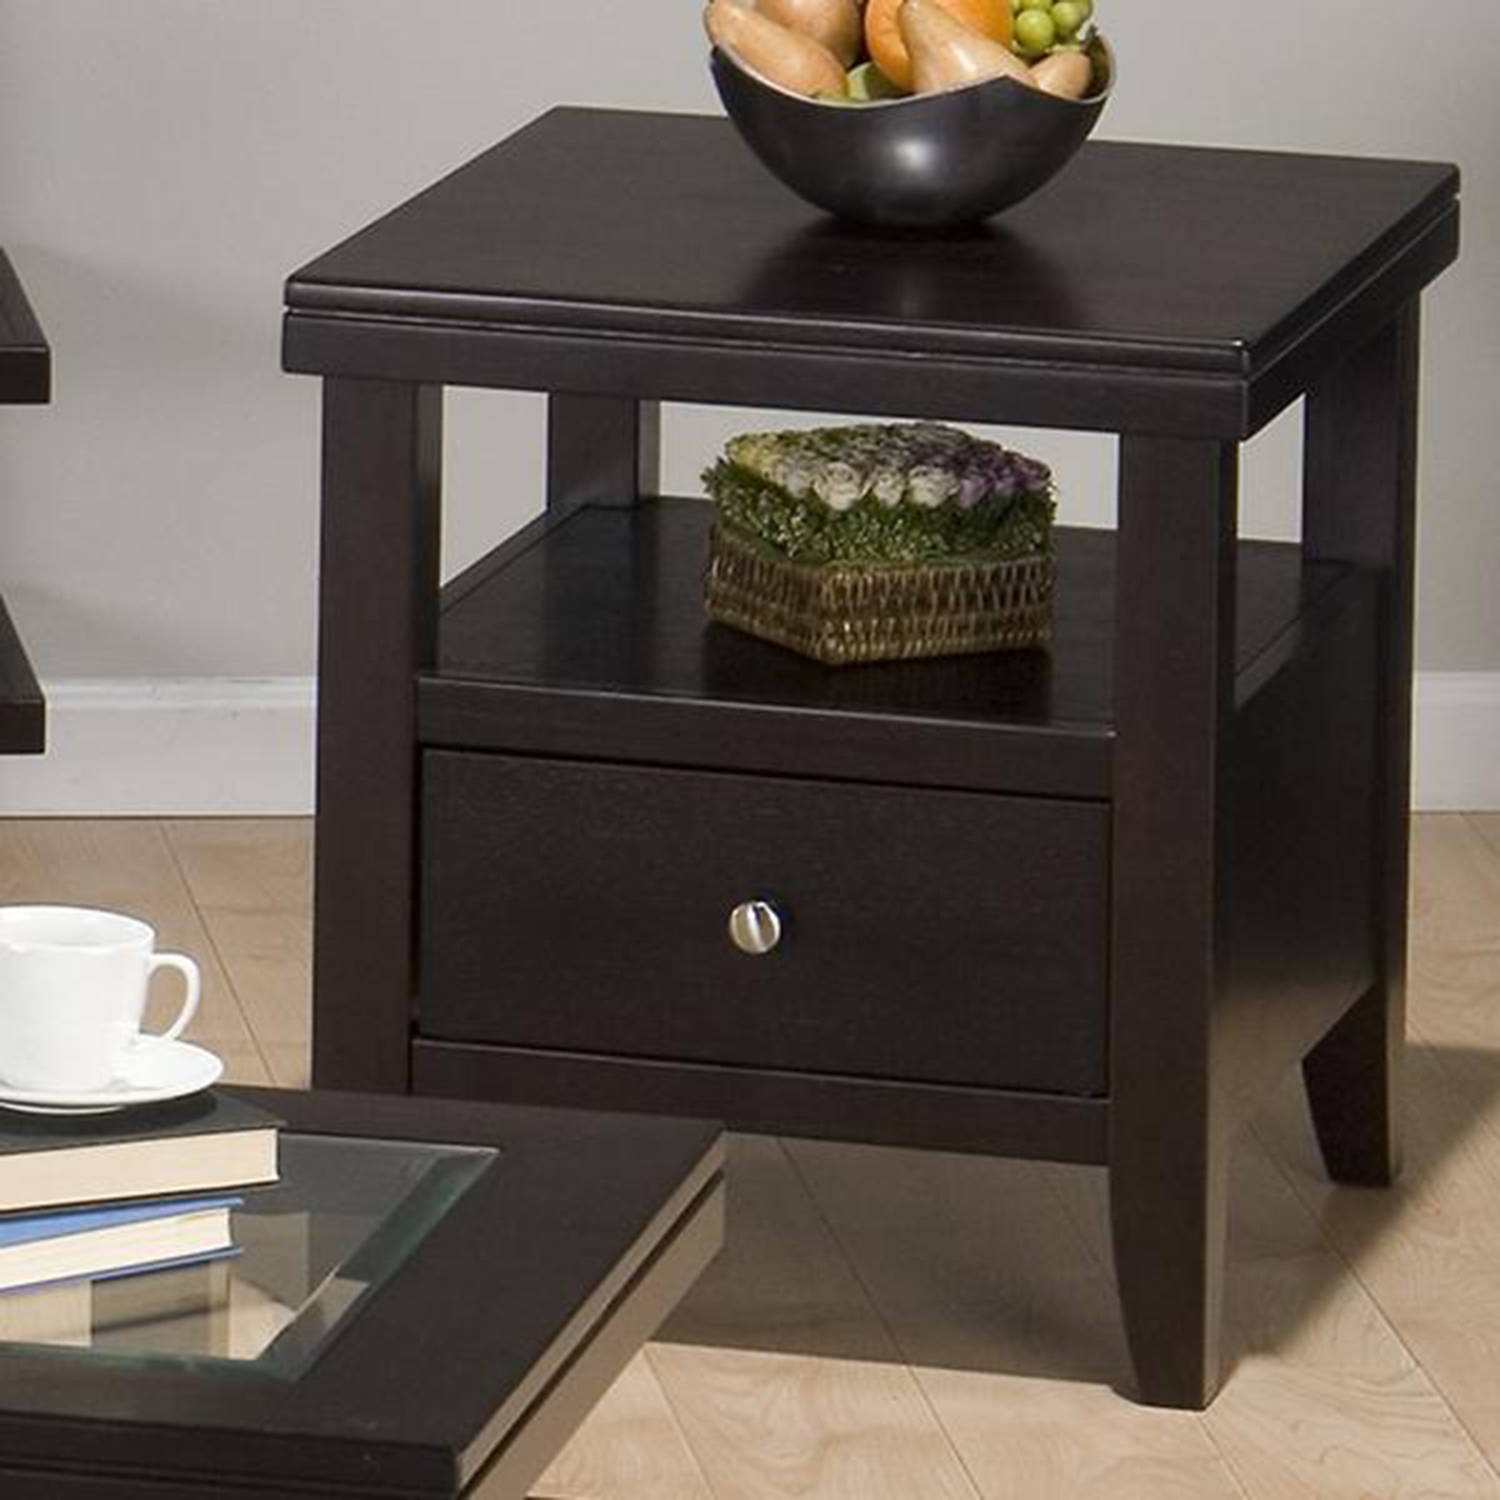 Marlon Square End Table - Wenge - JOFR-091-3